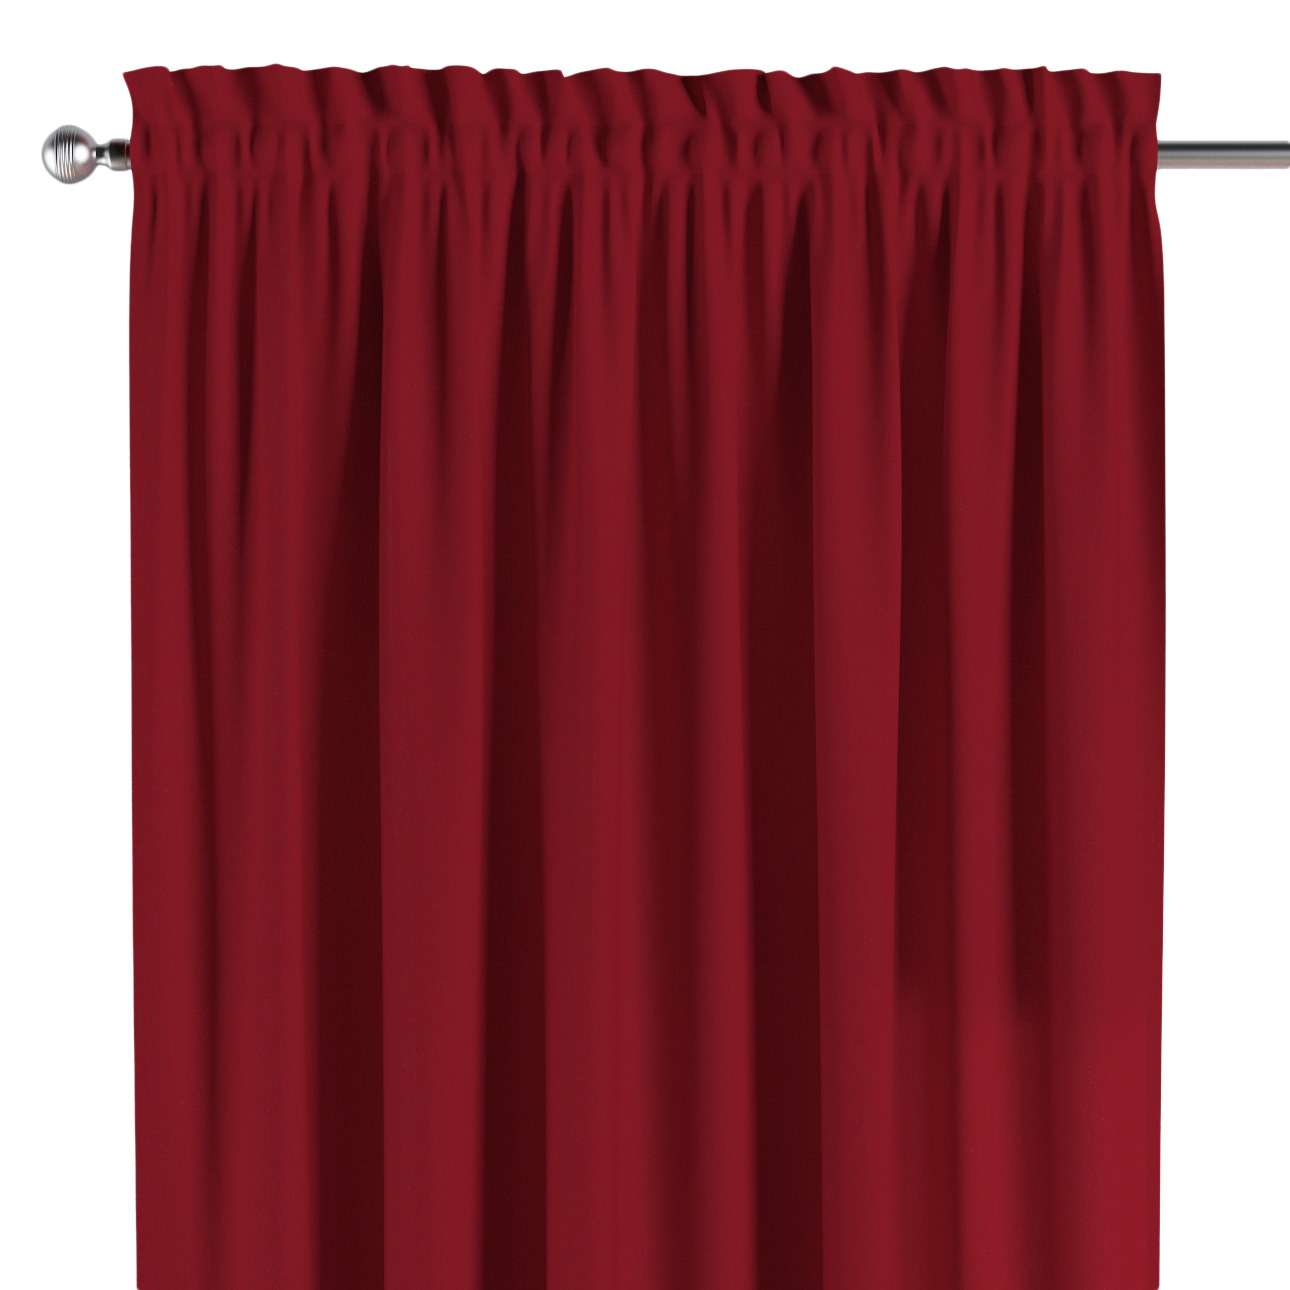 Slot and frill curtains 130 x 260 cm (51 x 102 inch) in collection Chenille, fabric: 702-24